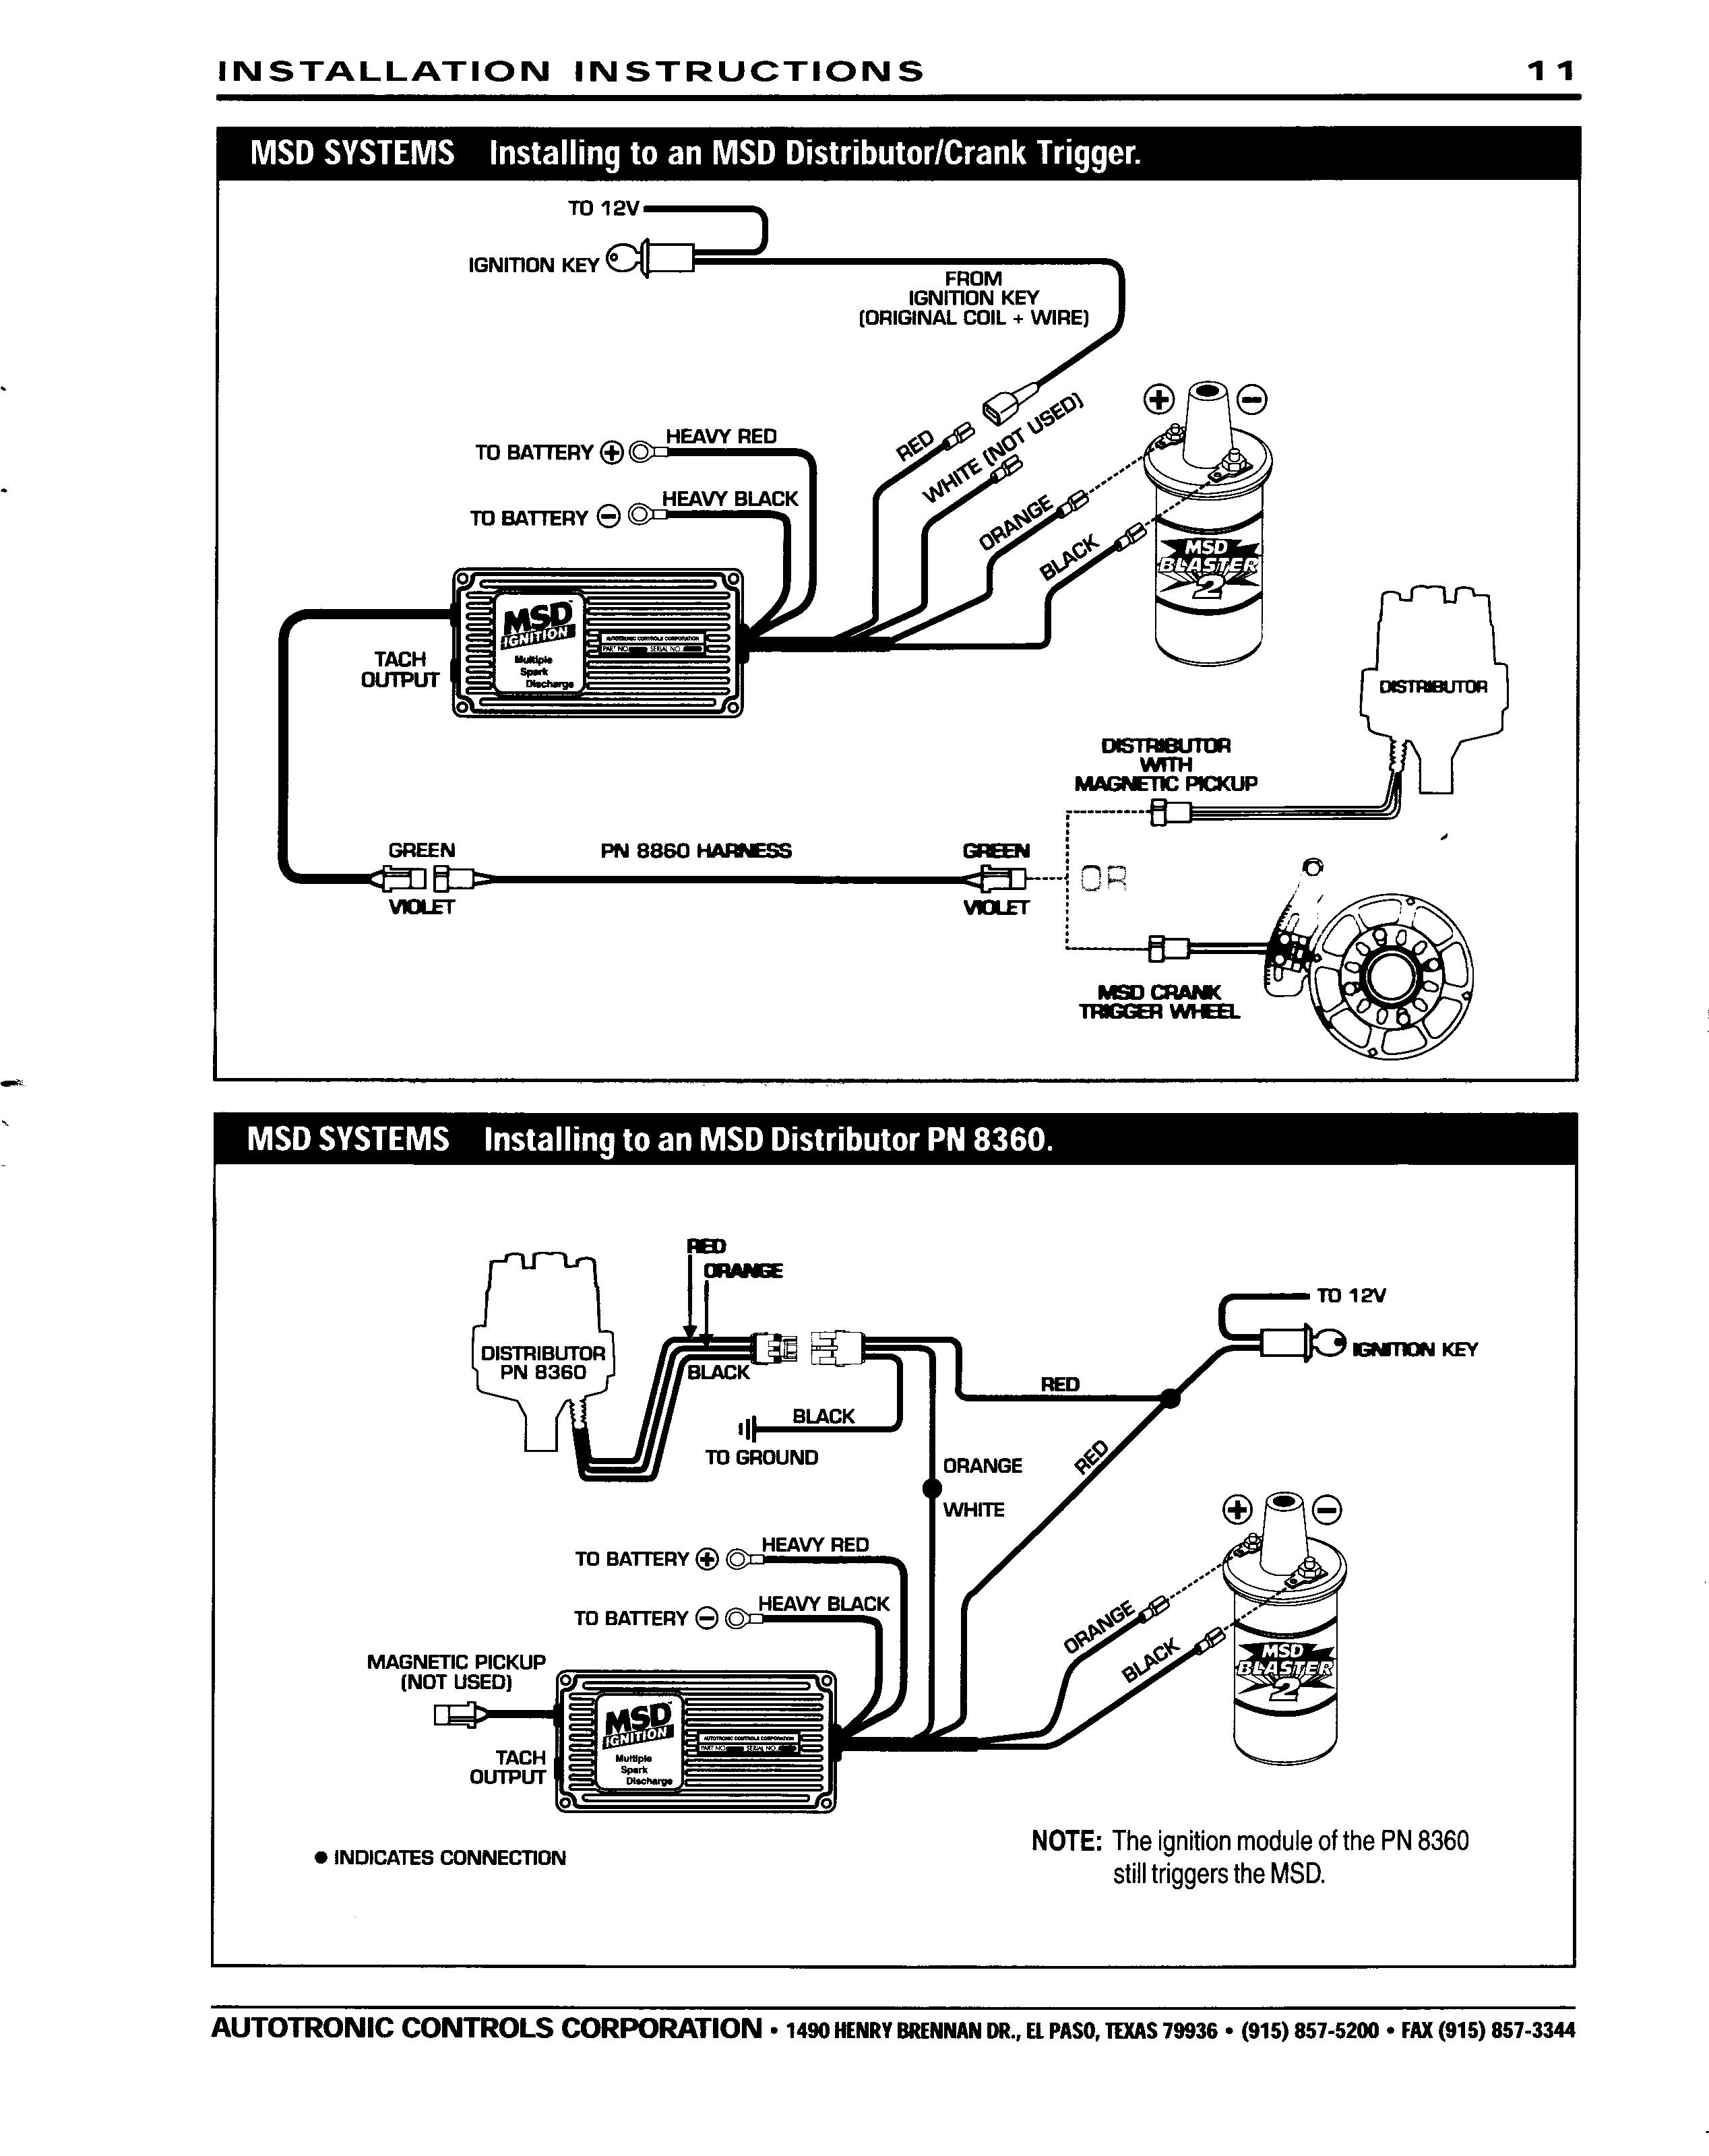 ballast resistor wiring diagram the wiring diagram bypassing or removing dual ballast resistor wiring diagram